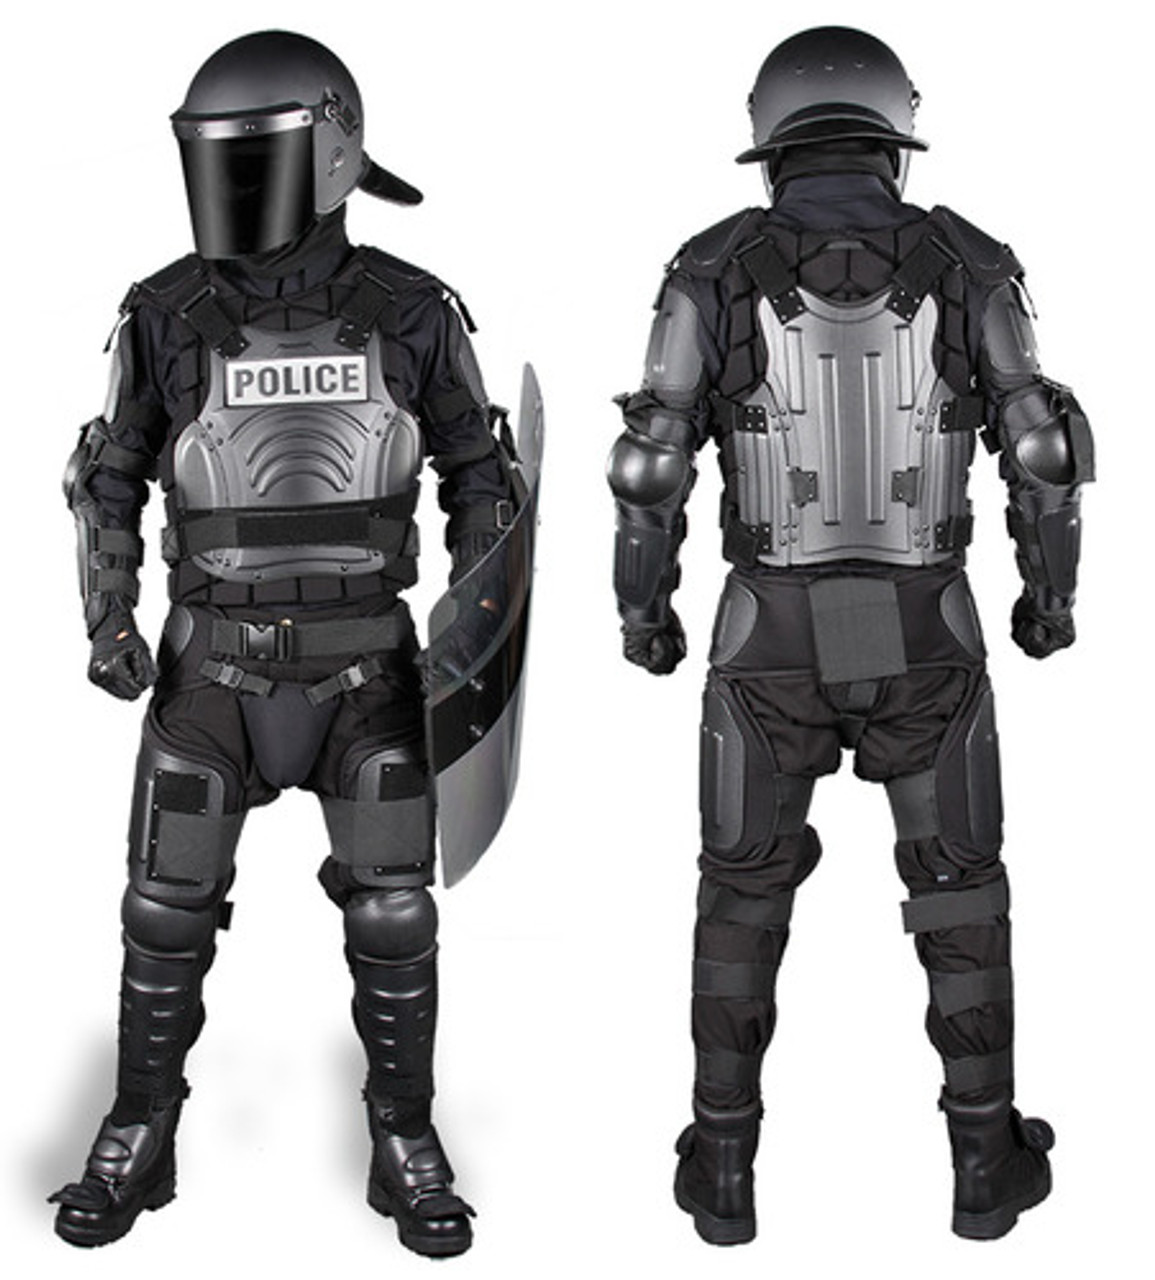 Damascus FX-1 Flex-Force Police Riot Gear Protective Suit, a complete set except the helmet that includes upper body, shoulder, forearm, groin, thigh, knee and shin protection, also includes a Gear Bag